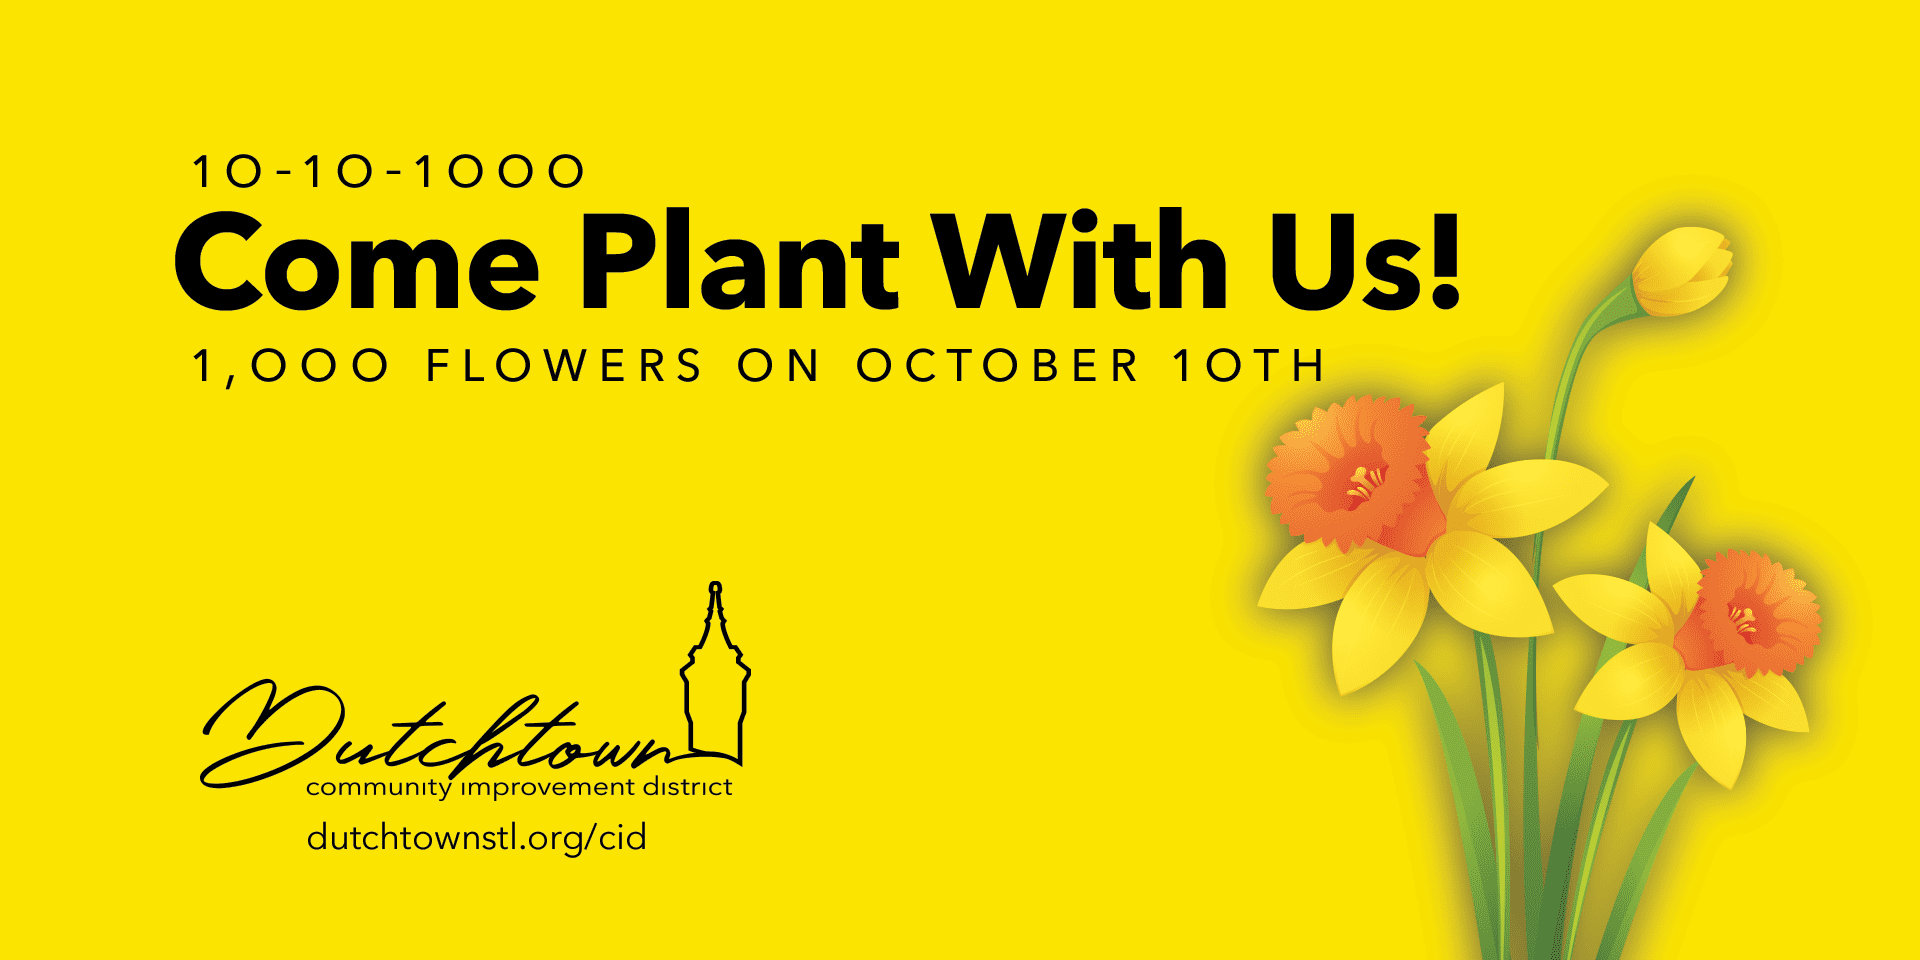 10-10-1000: Come Plant With Us!